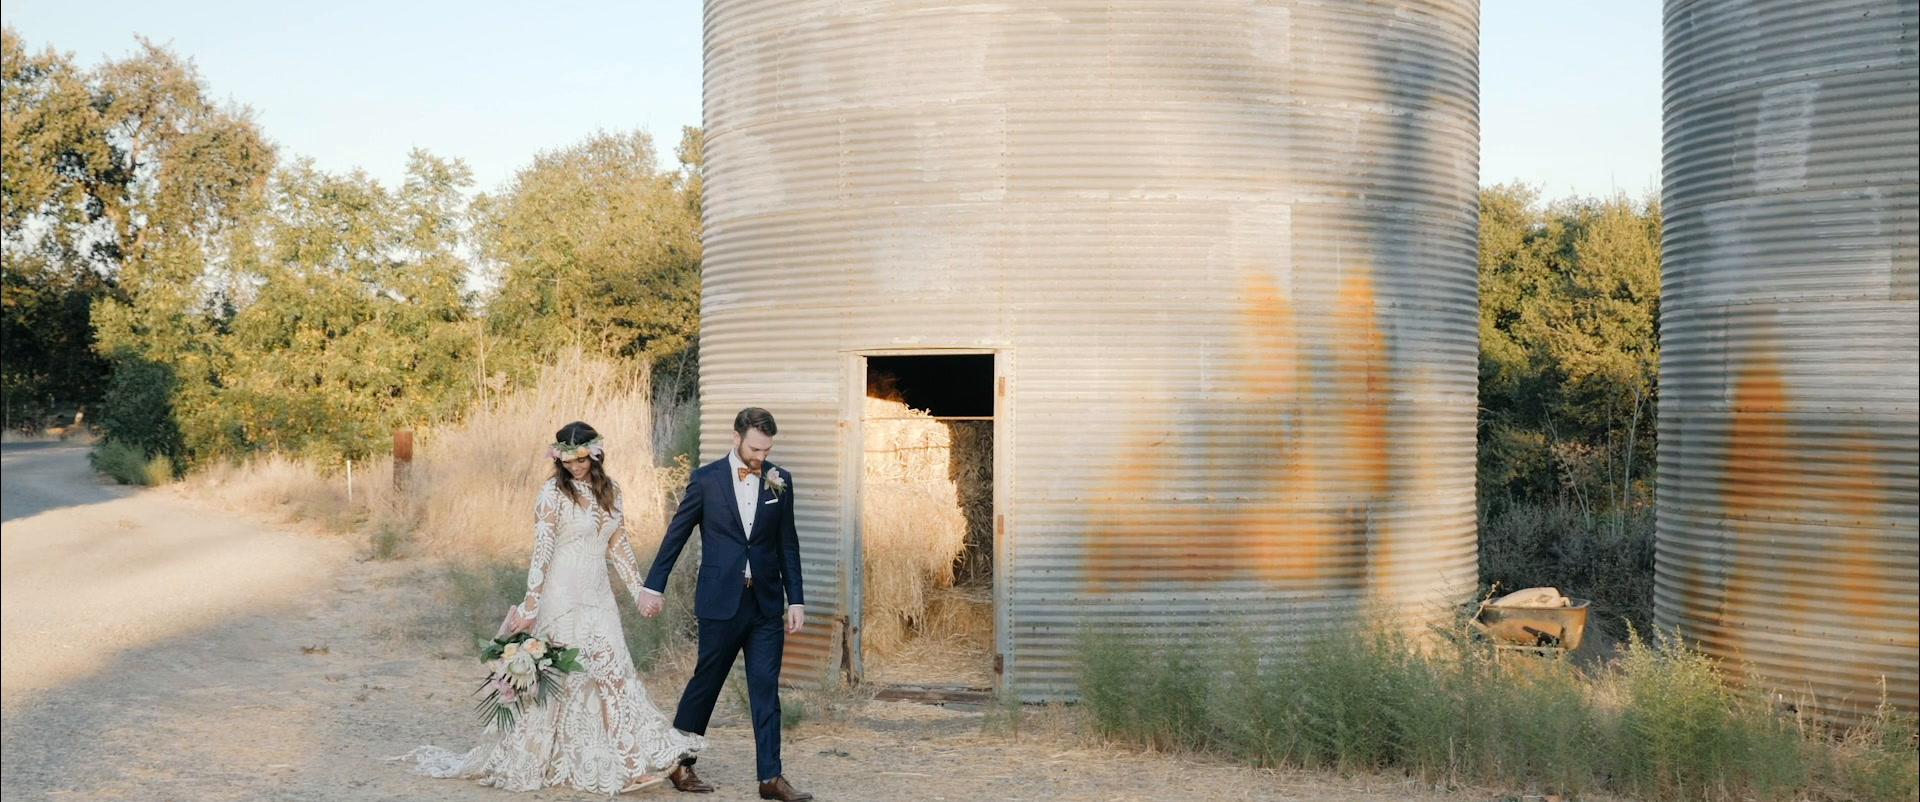 Victoria + Taylor | Winters, California | Field & Pond